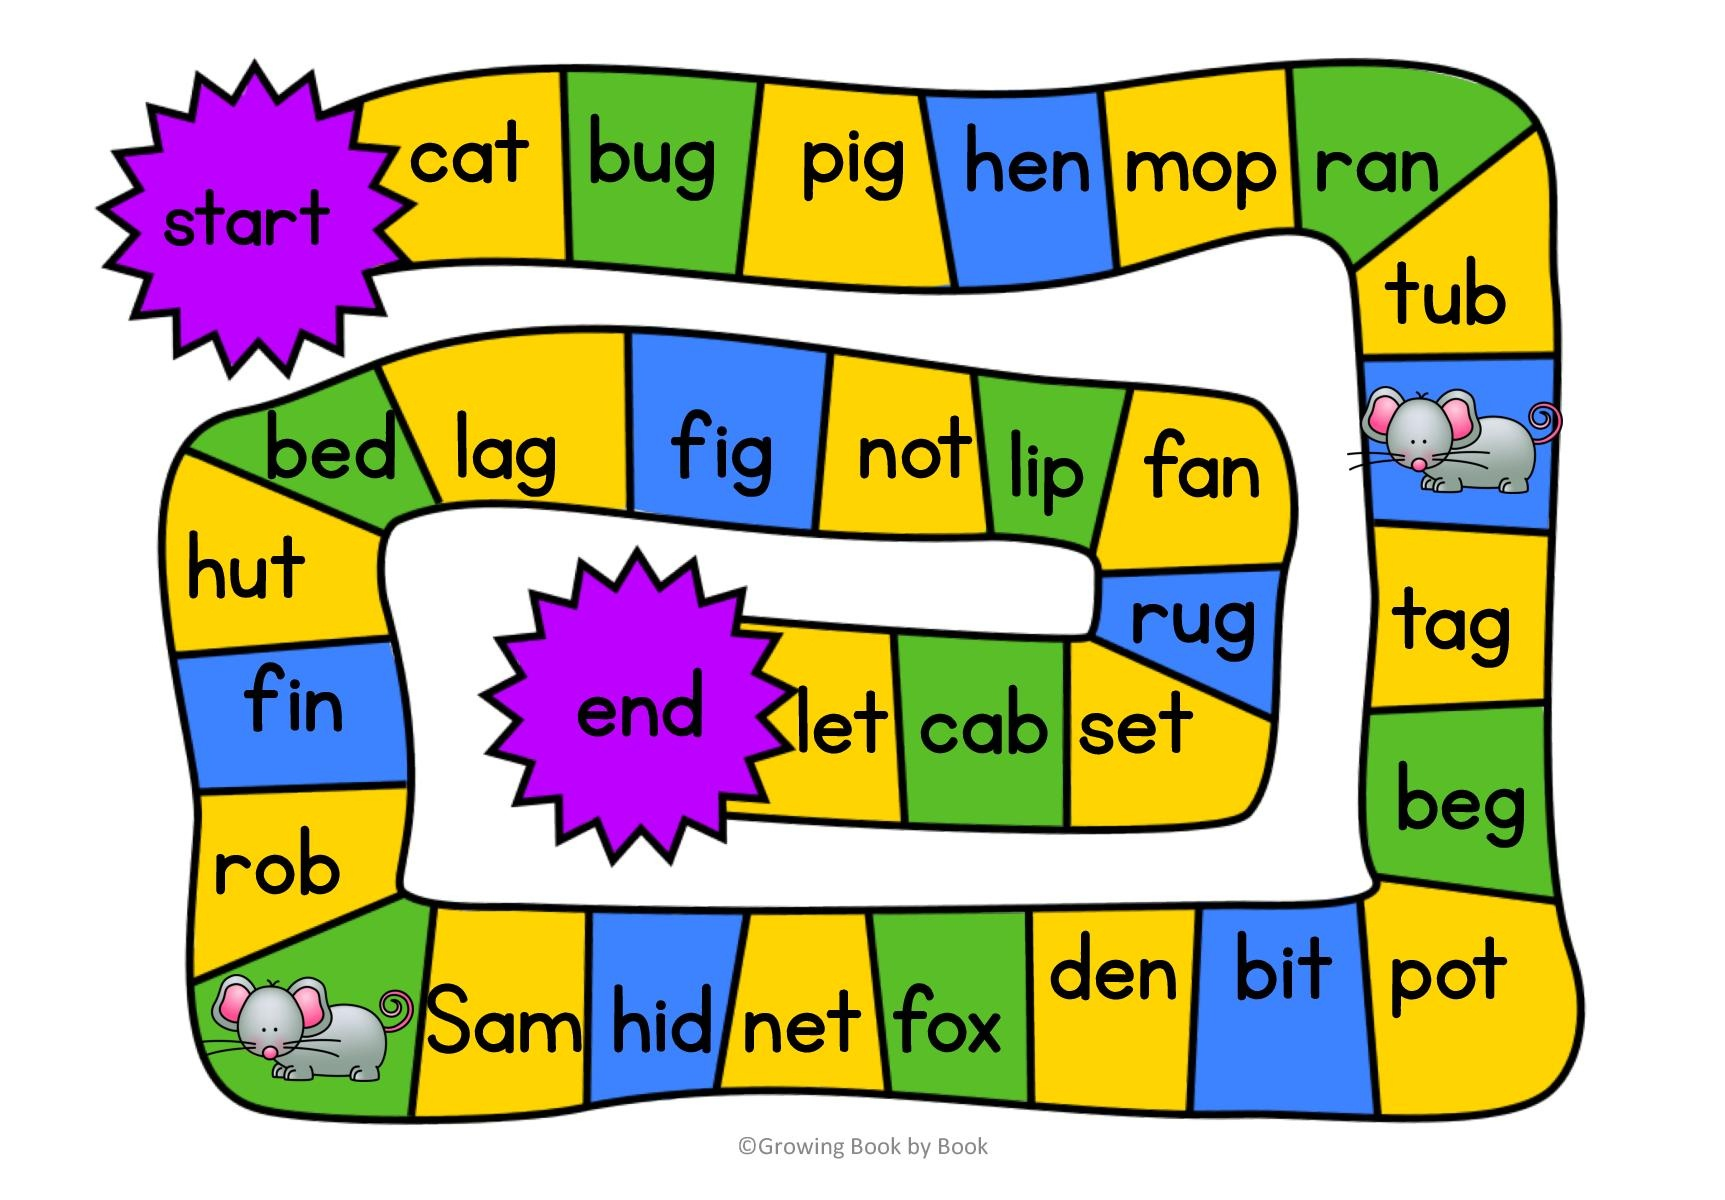 3 Free Printable Cvc Word Games - Free Printable Cvc Words With Pictures